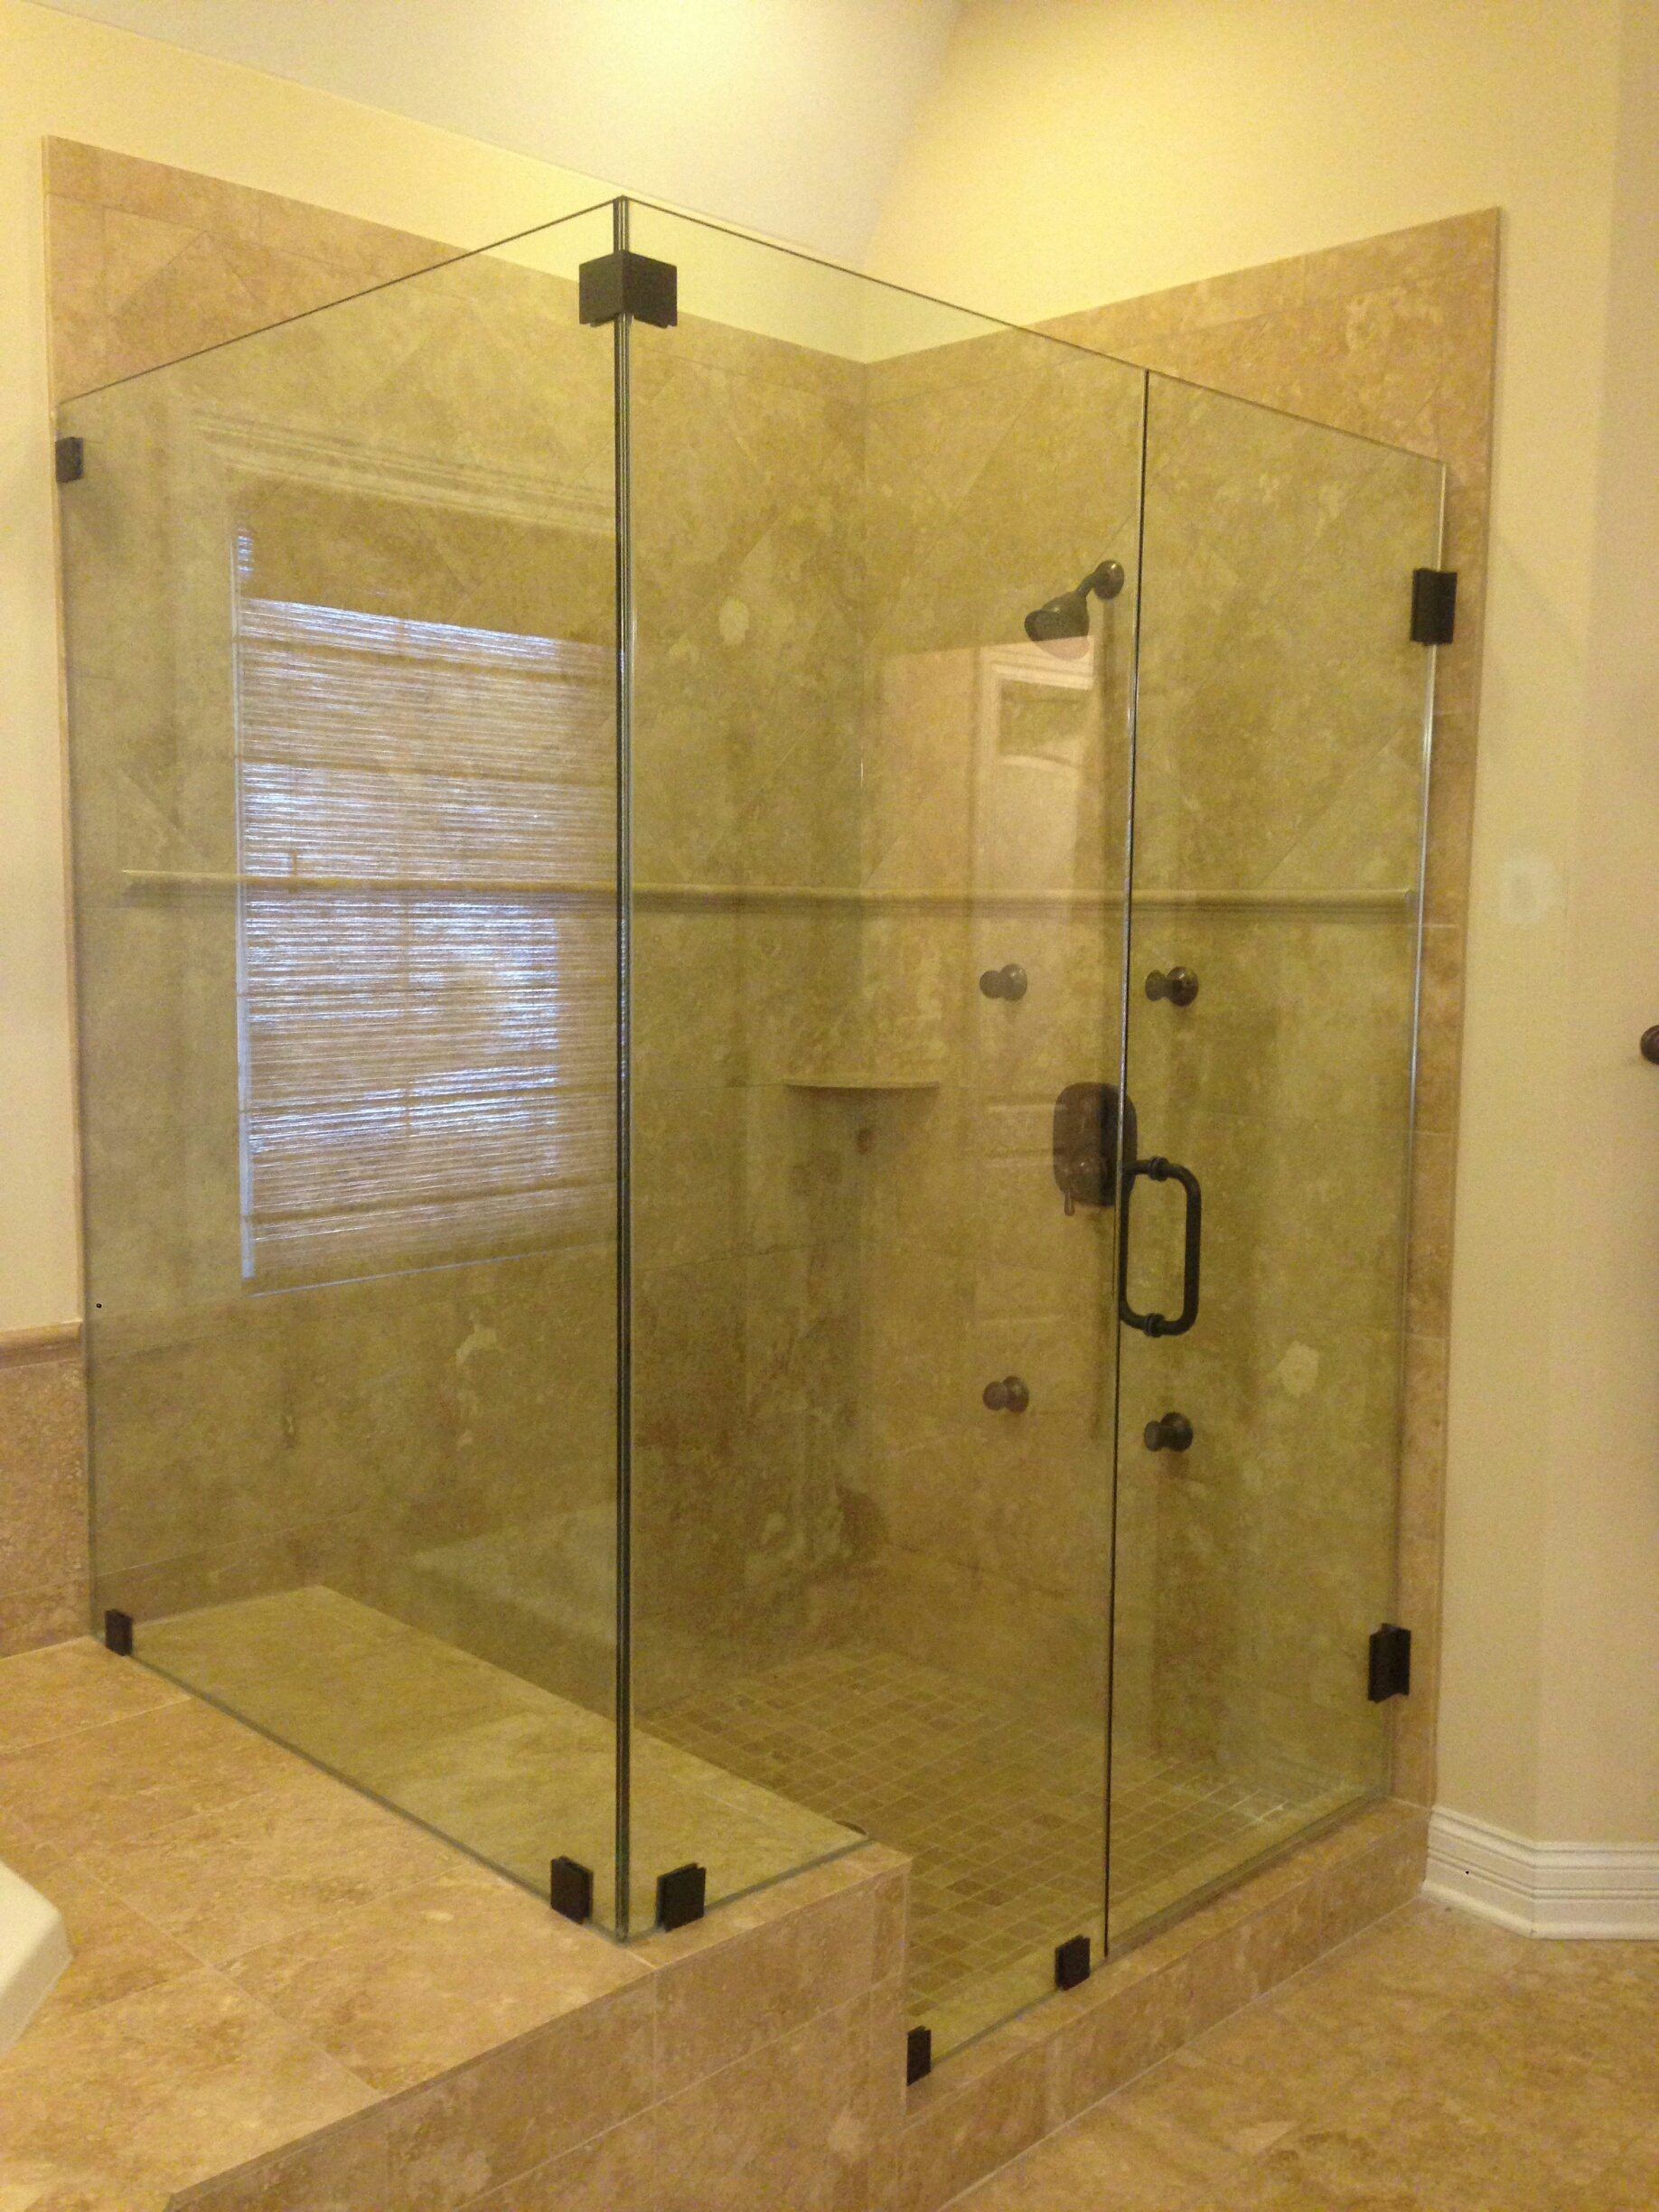 Shower Doors 20 20 Glass Llc